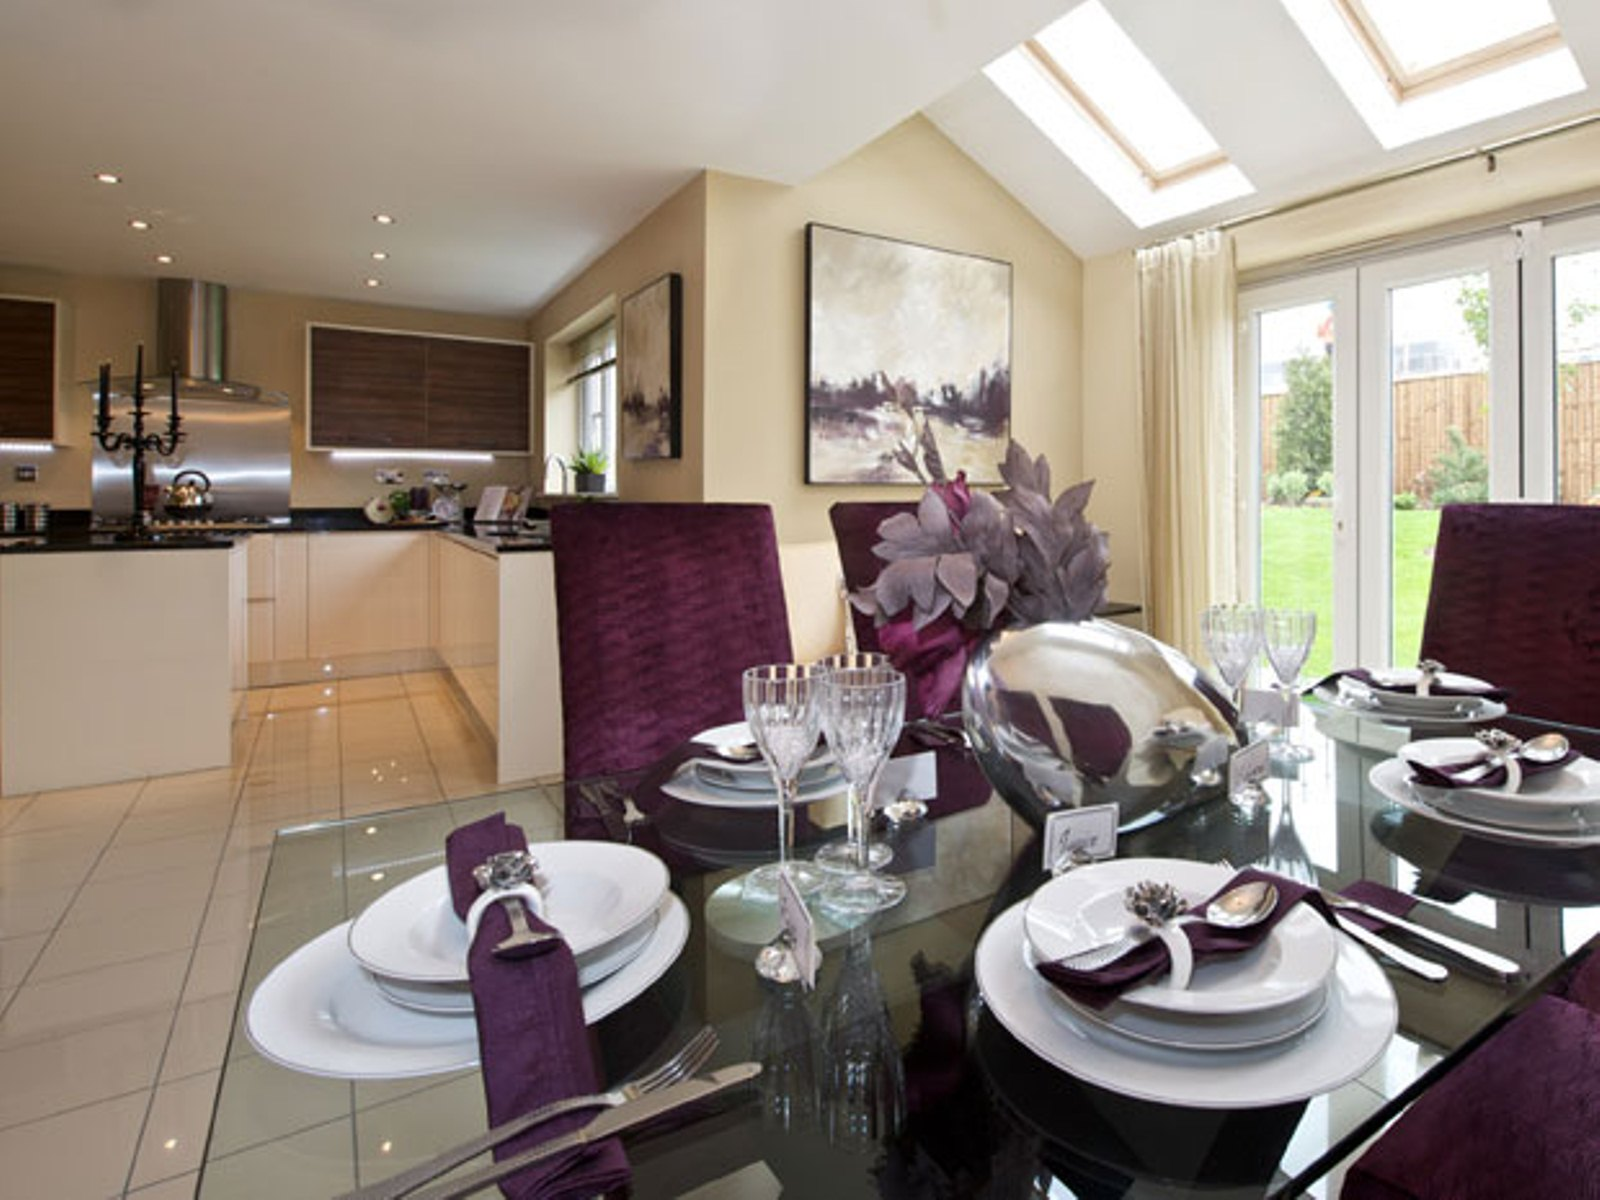 The Woodleigh - Showhome - 4 Bed Detached